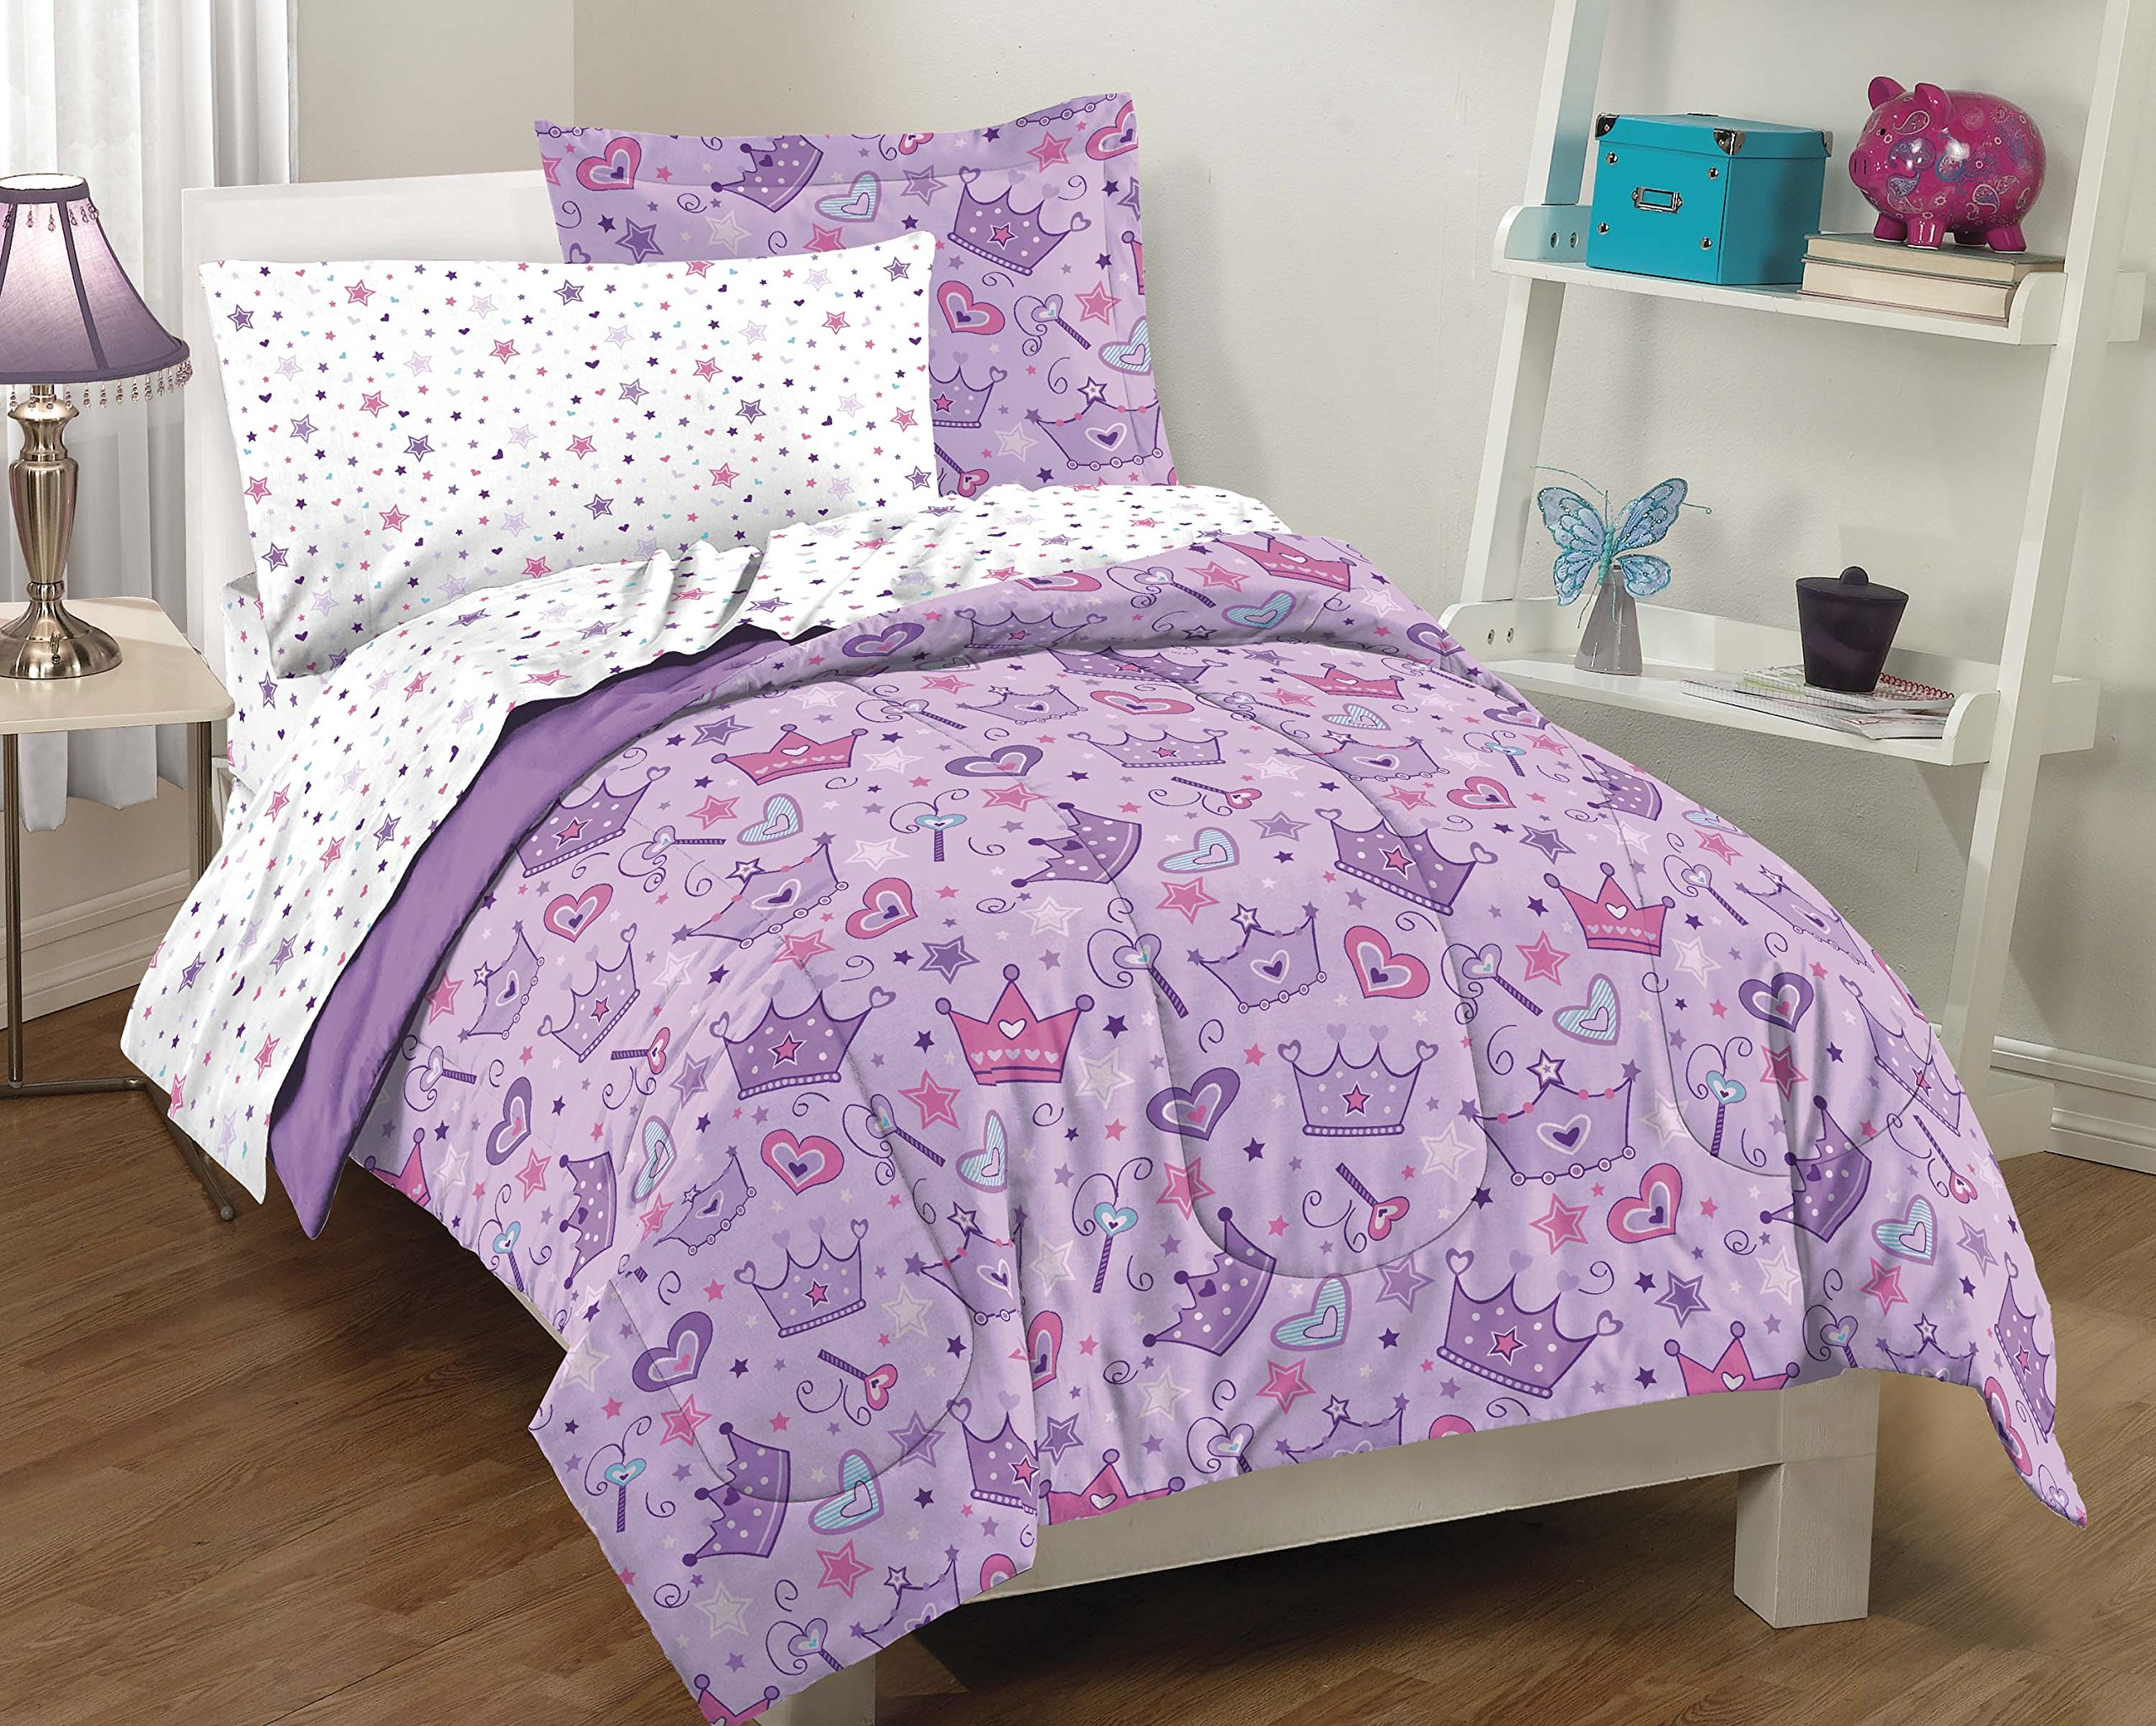 Girls Twin Comforter: Dream Factory Purple Princess Hearts And Crowns Girls